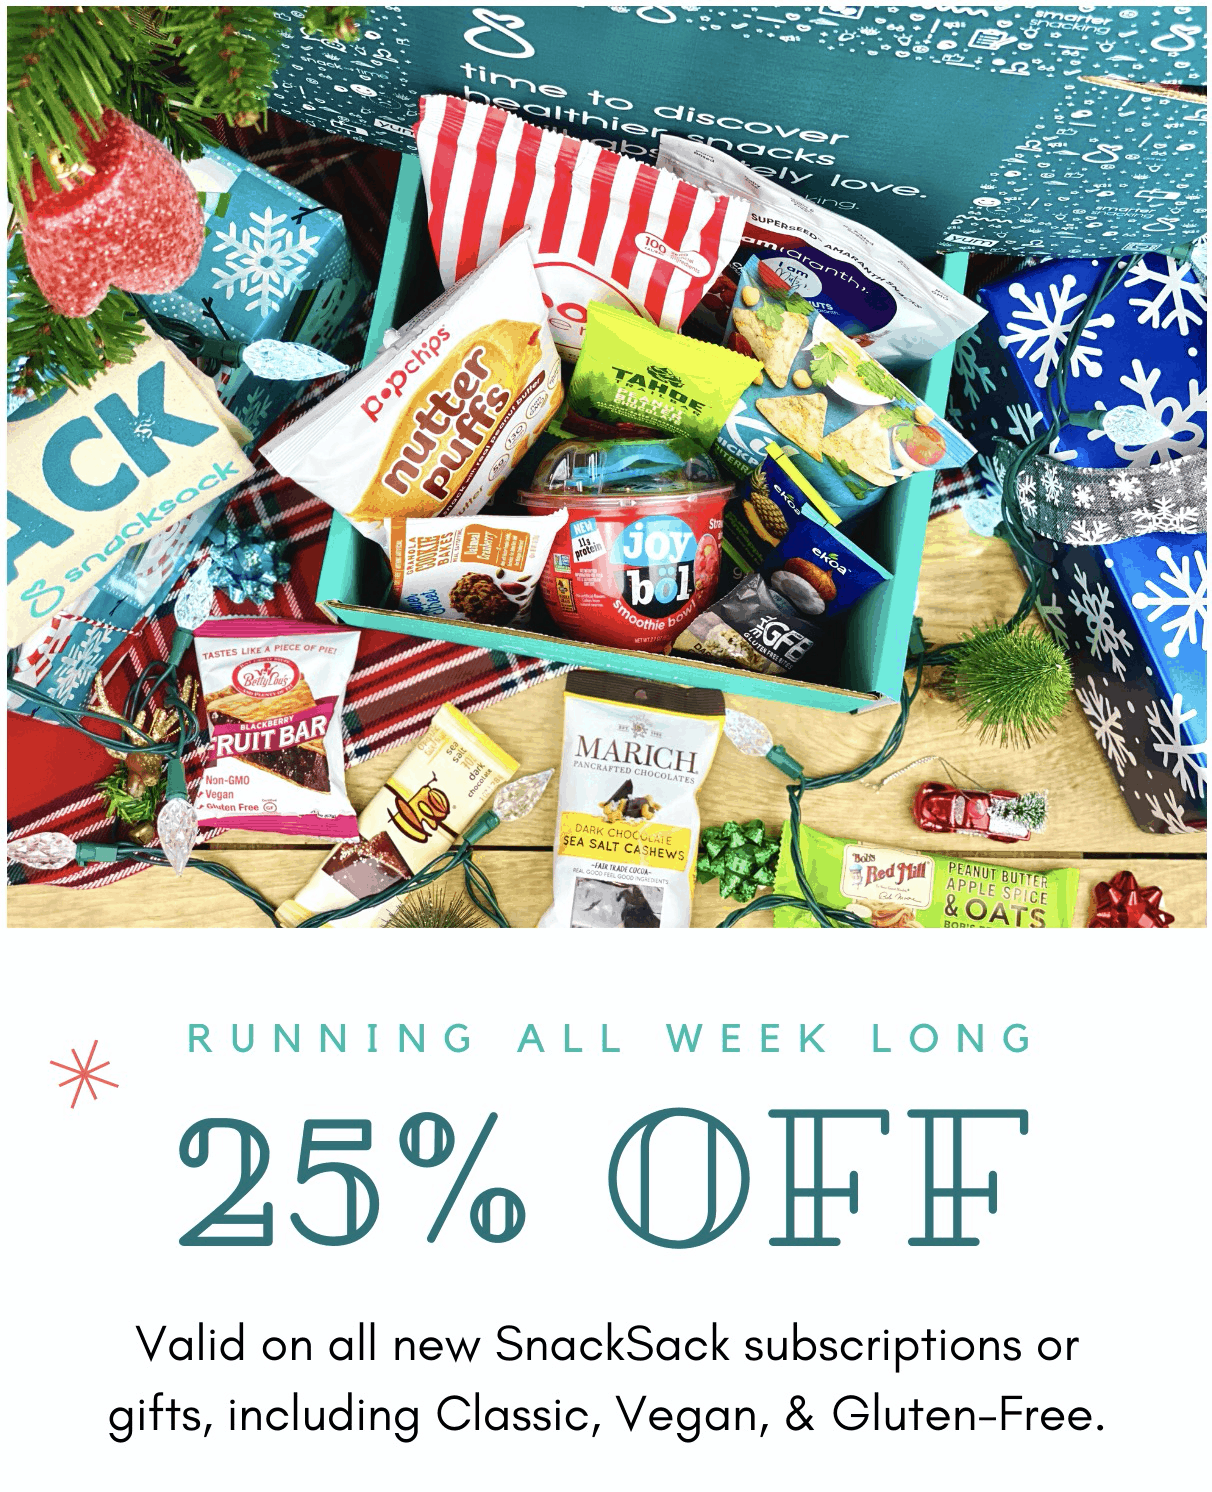 SnackSack Cyber Monday Coupon: Save 30% on any SnackSack plan!